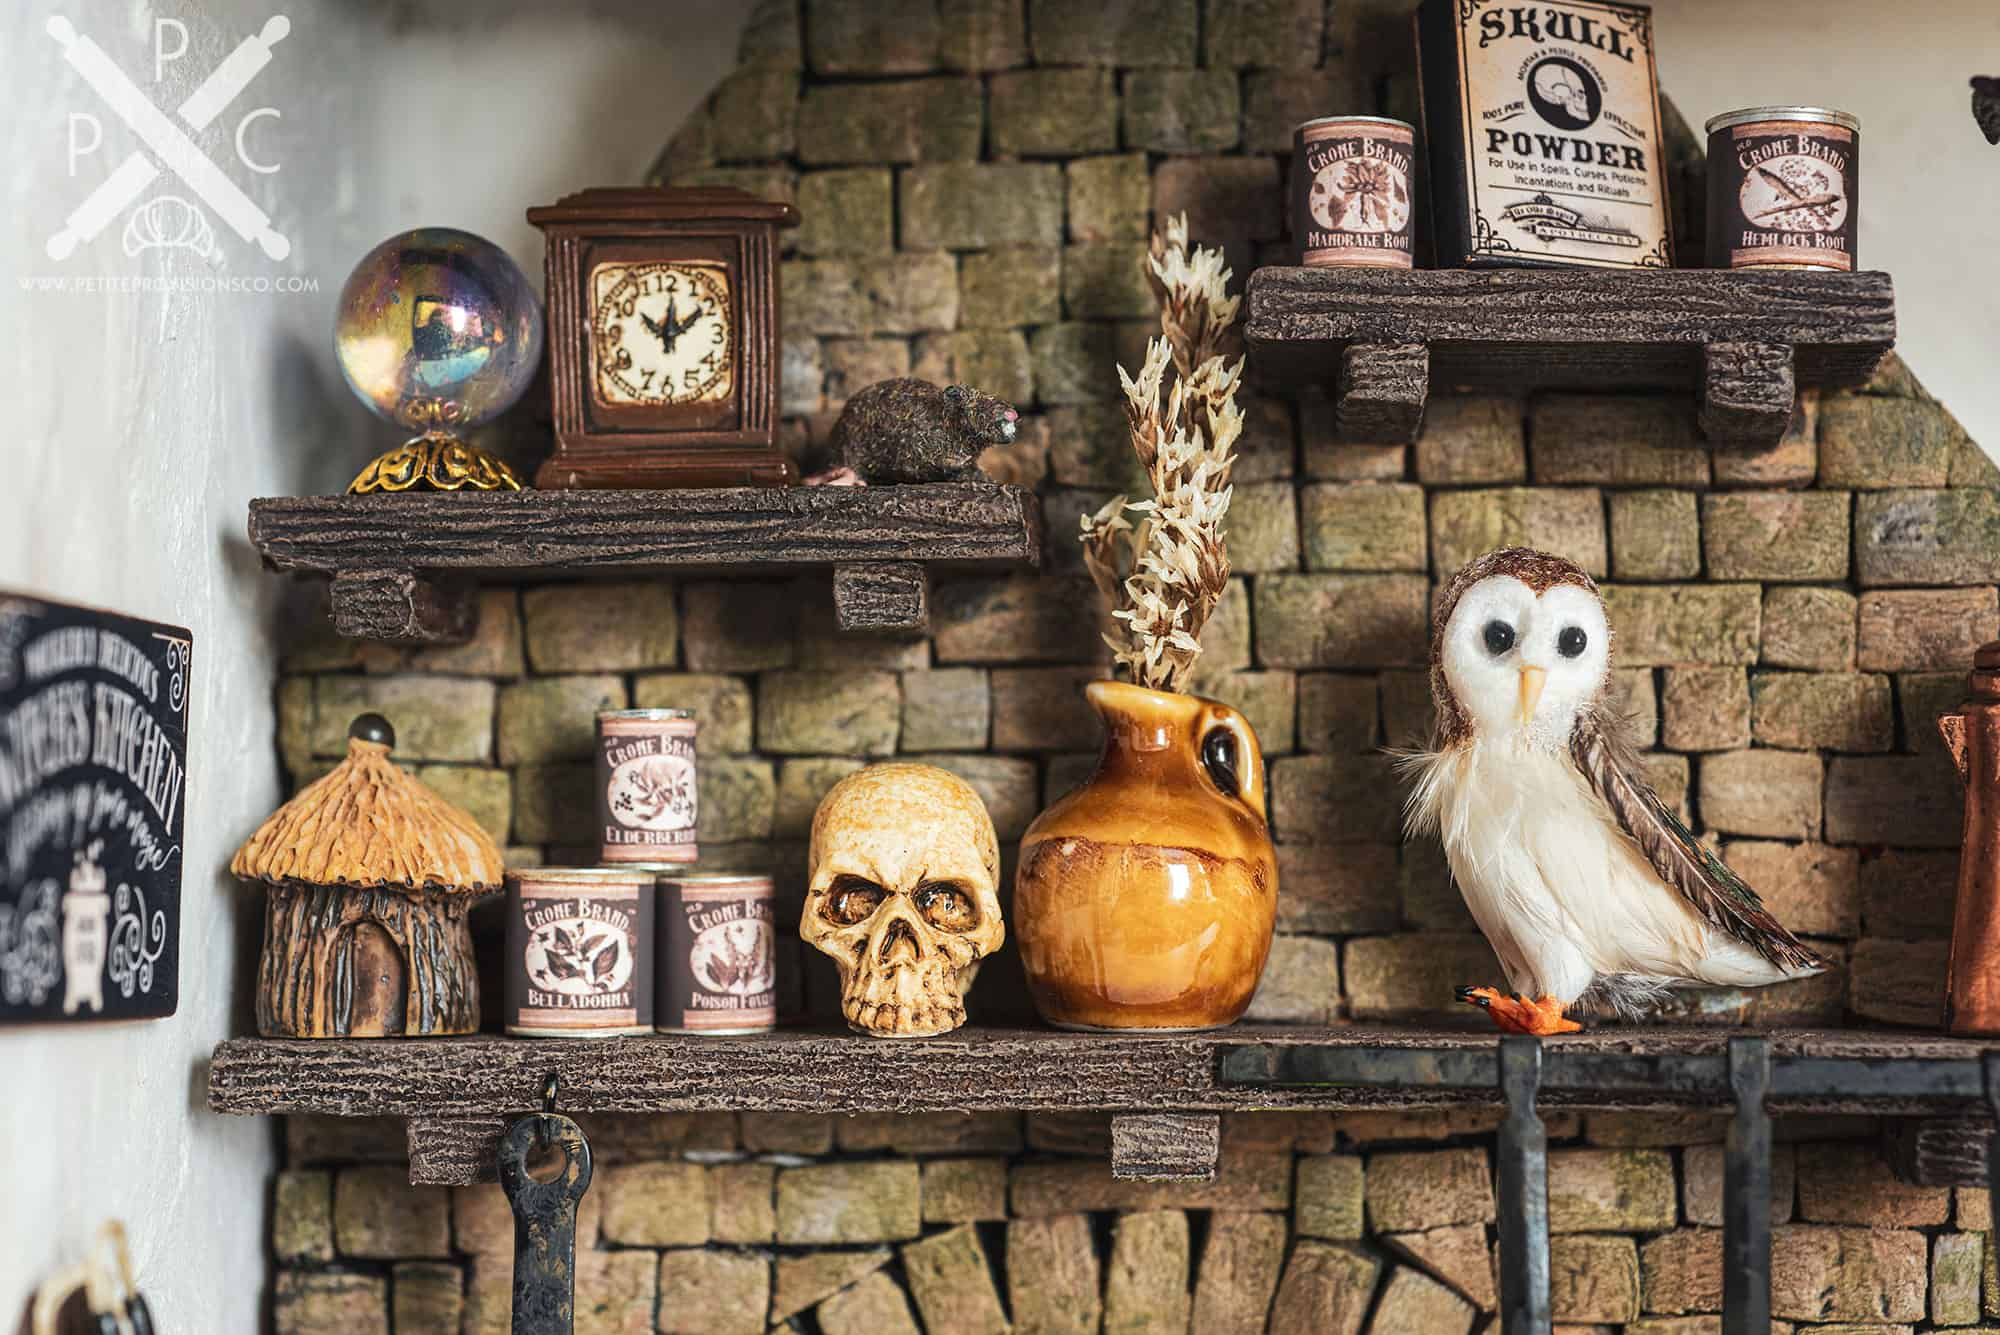 Fireplace Mantle in Witch's Kitchen Themed Roombox - Halloween at the Hag's Hearth - HBSMiniatures Halloween Challenge 2020